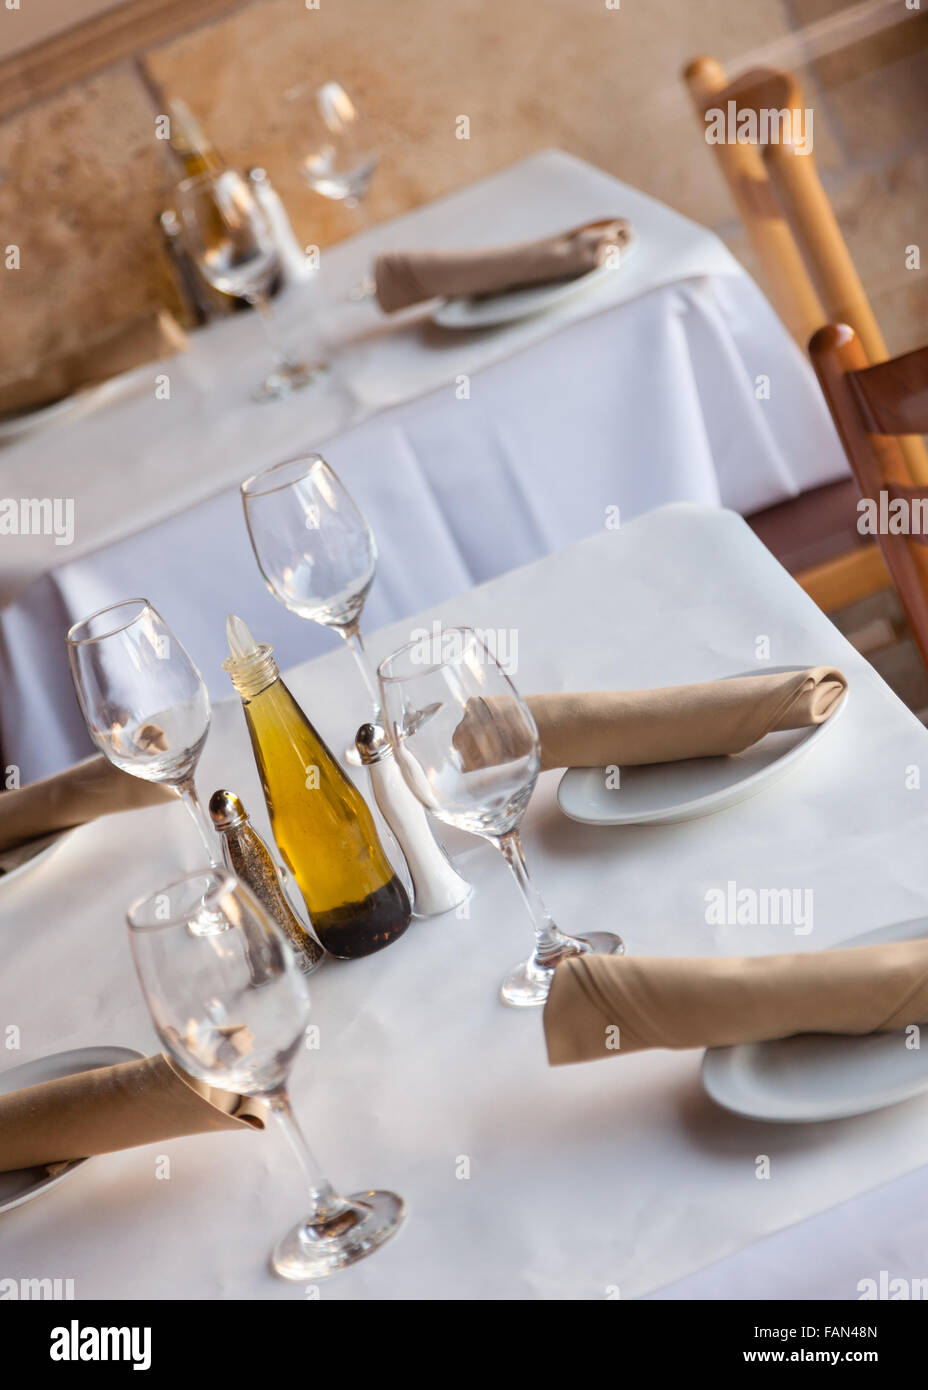 Simple Table setting in a restaurant with white tablecloth napkins and wine glasses. & Simple Table setting in a restaurant with white tablecloth napkins ...